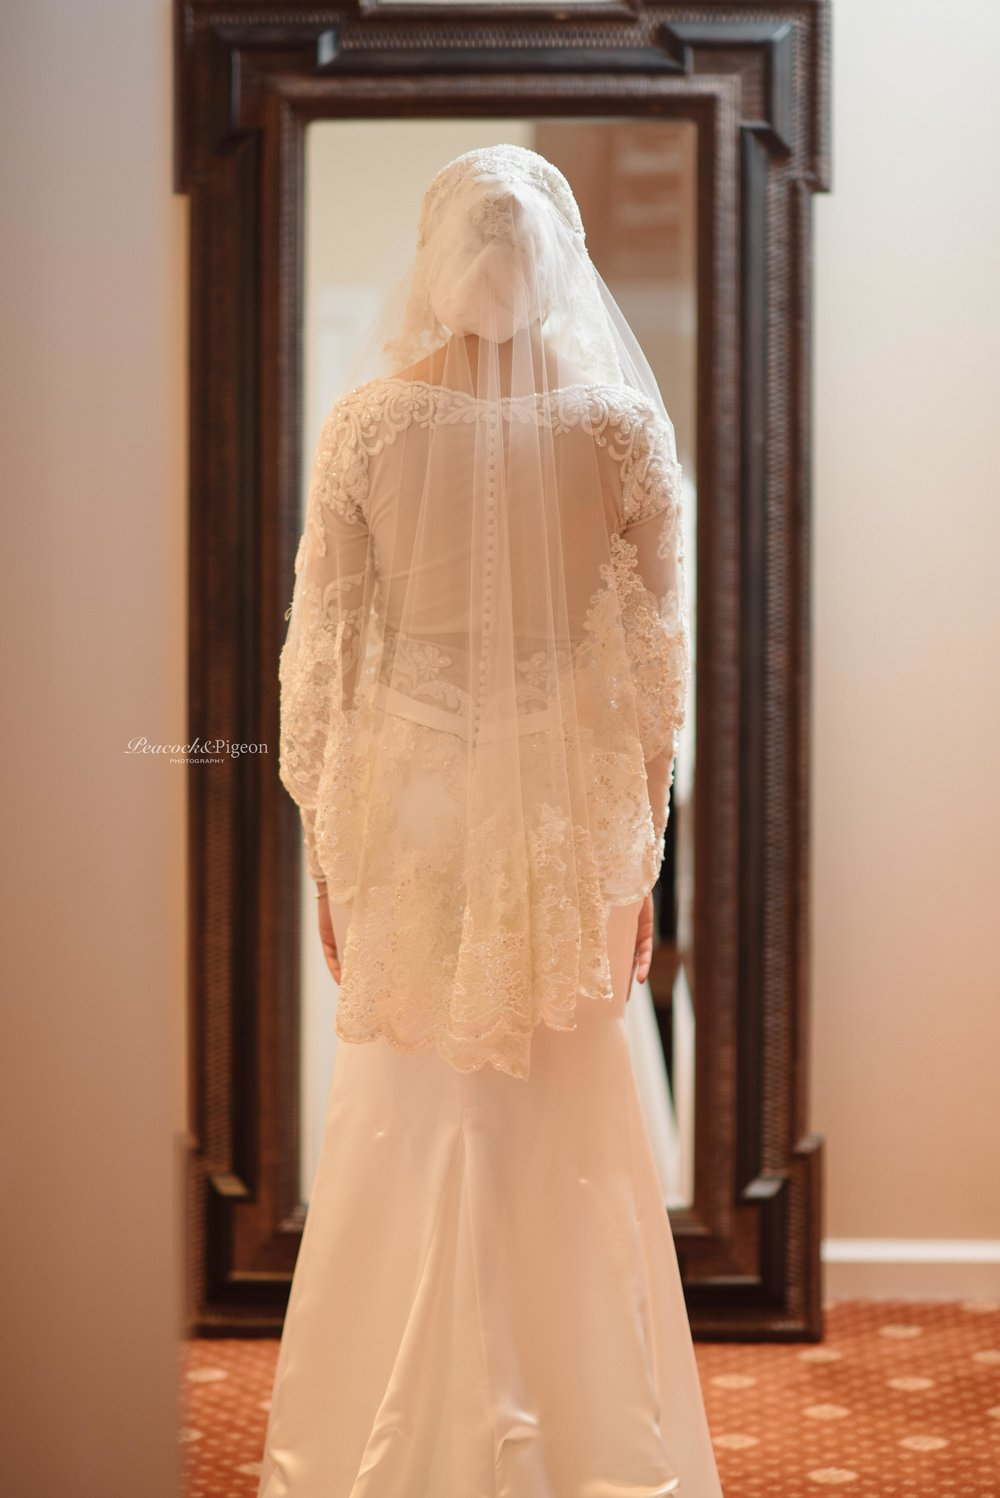 The_Wedding_of_Radwa_and_Kareem_at_Somerset_Palace_Part_Three_Kareem_and_Radwa_Portraits-Watermarked-21.jpg